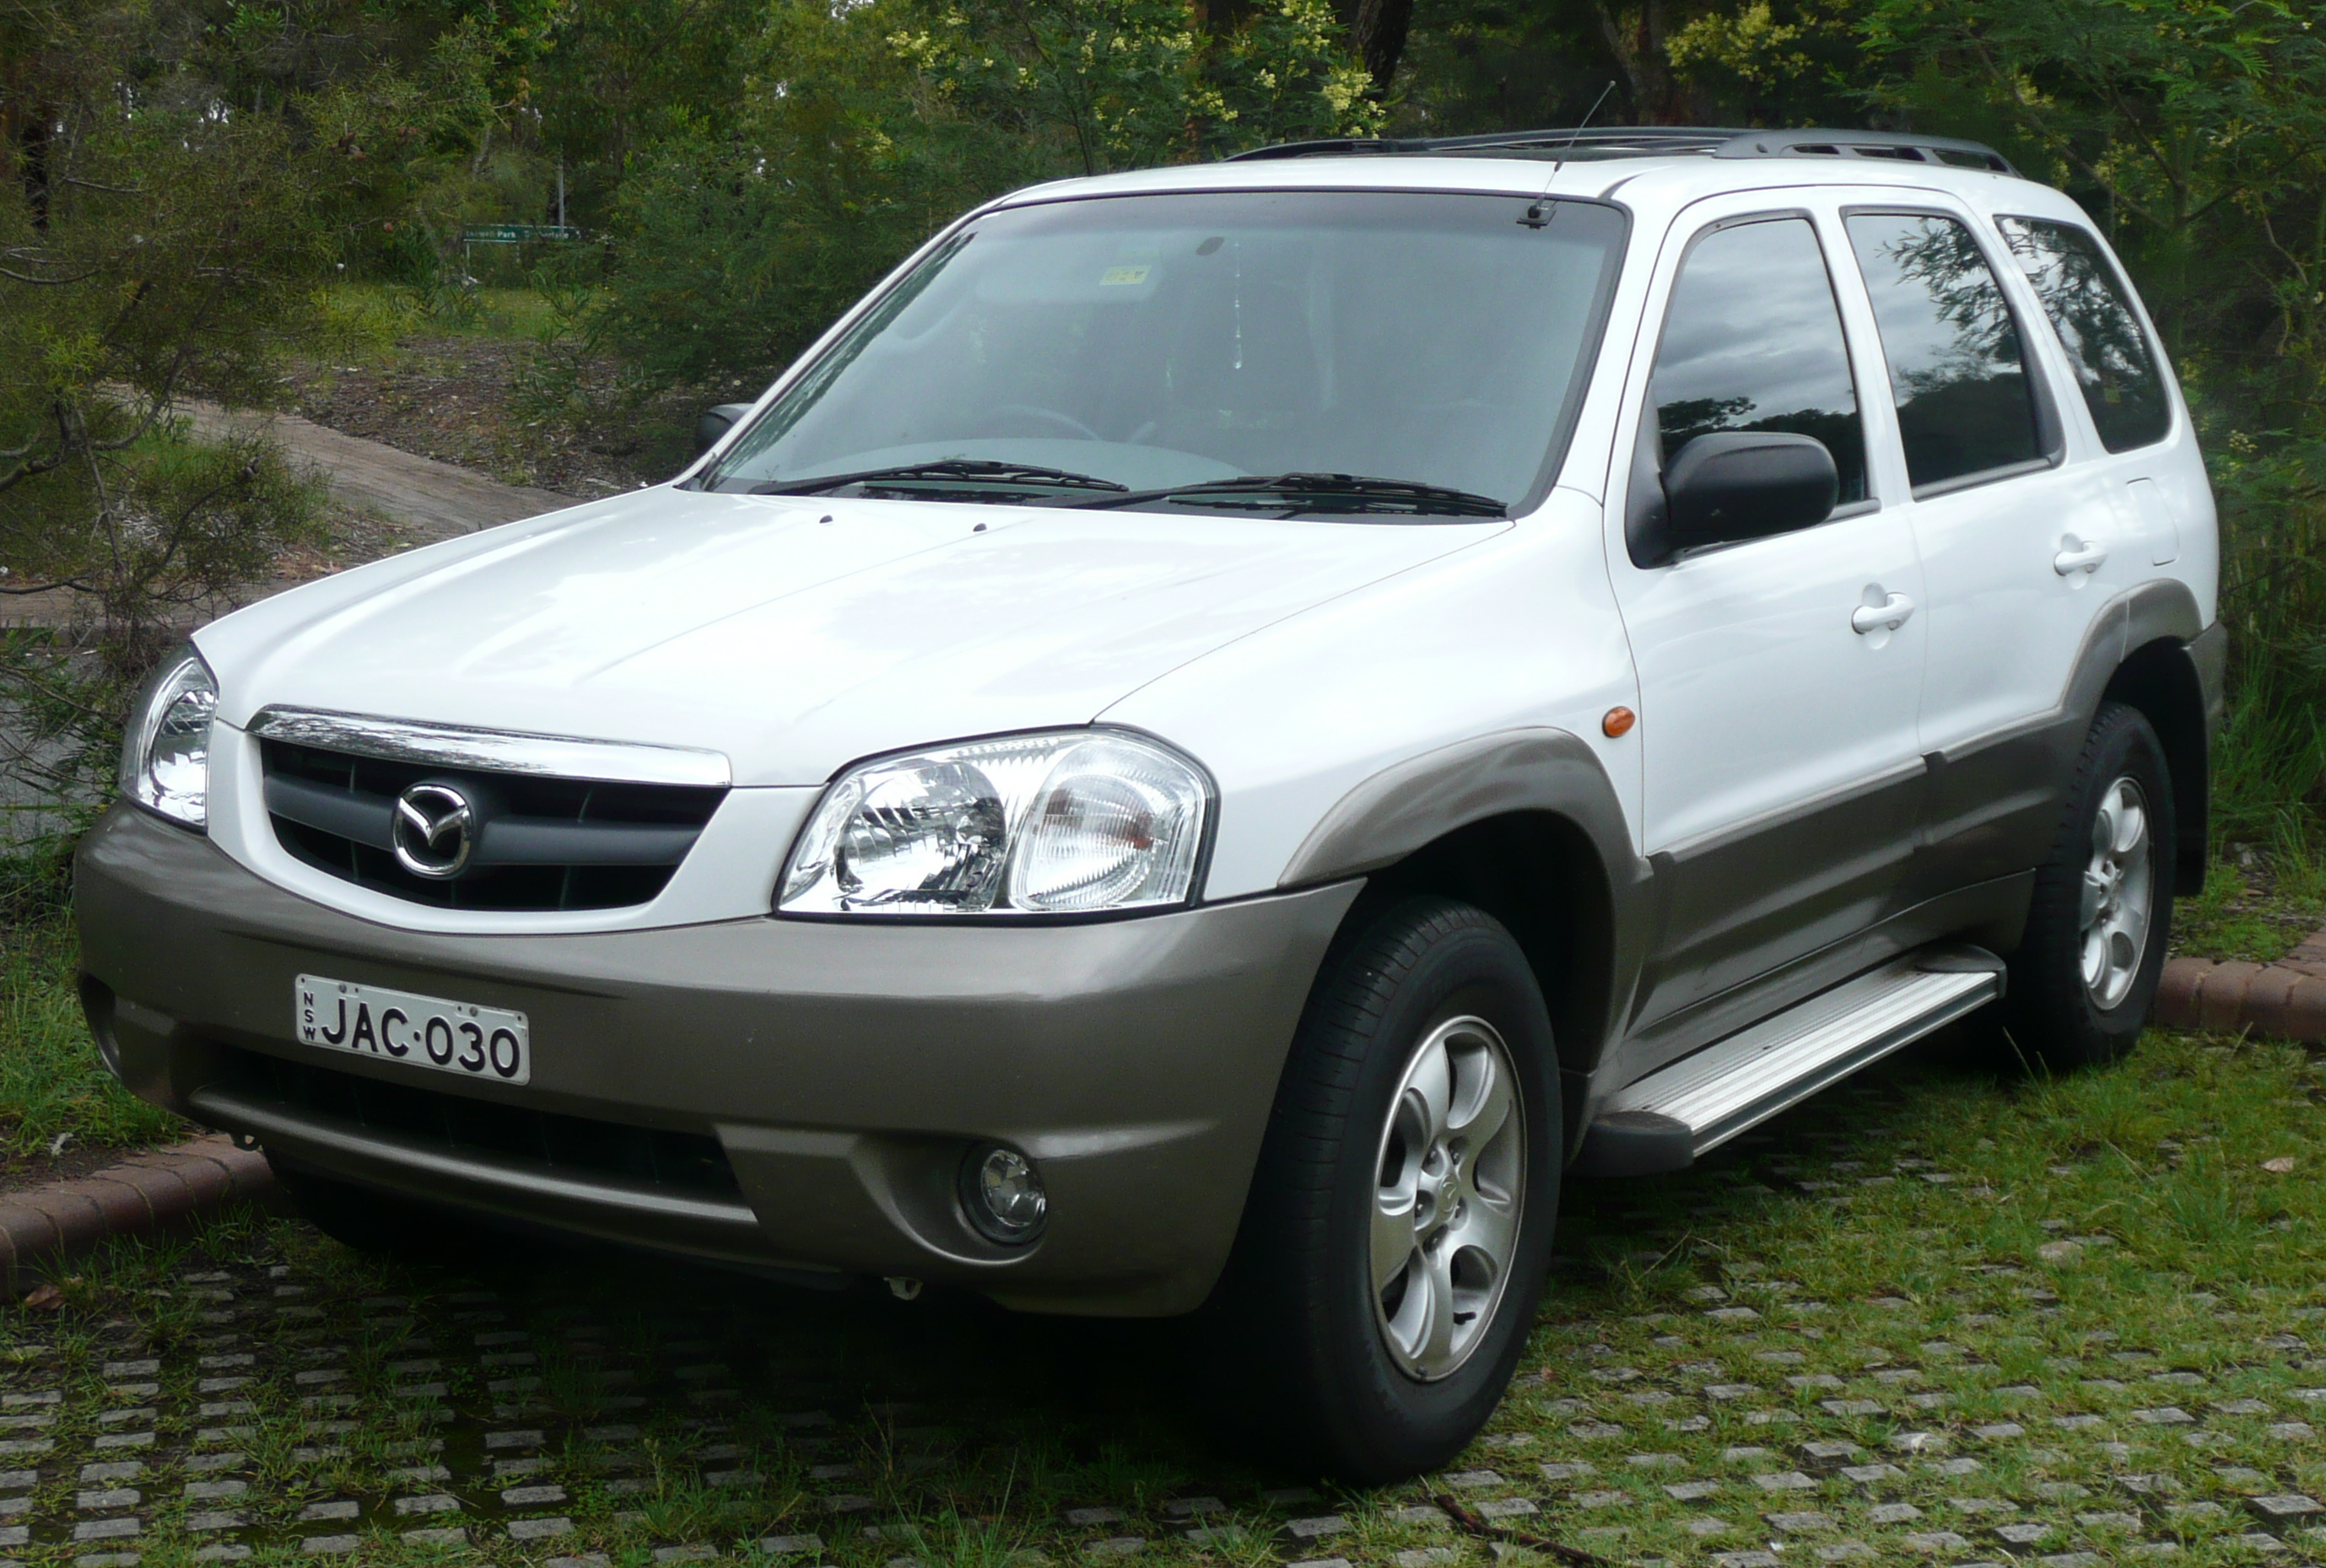 Black Mazda Tribute 2002